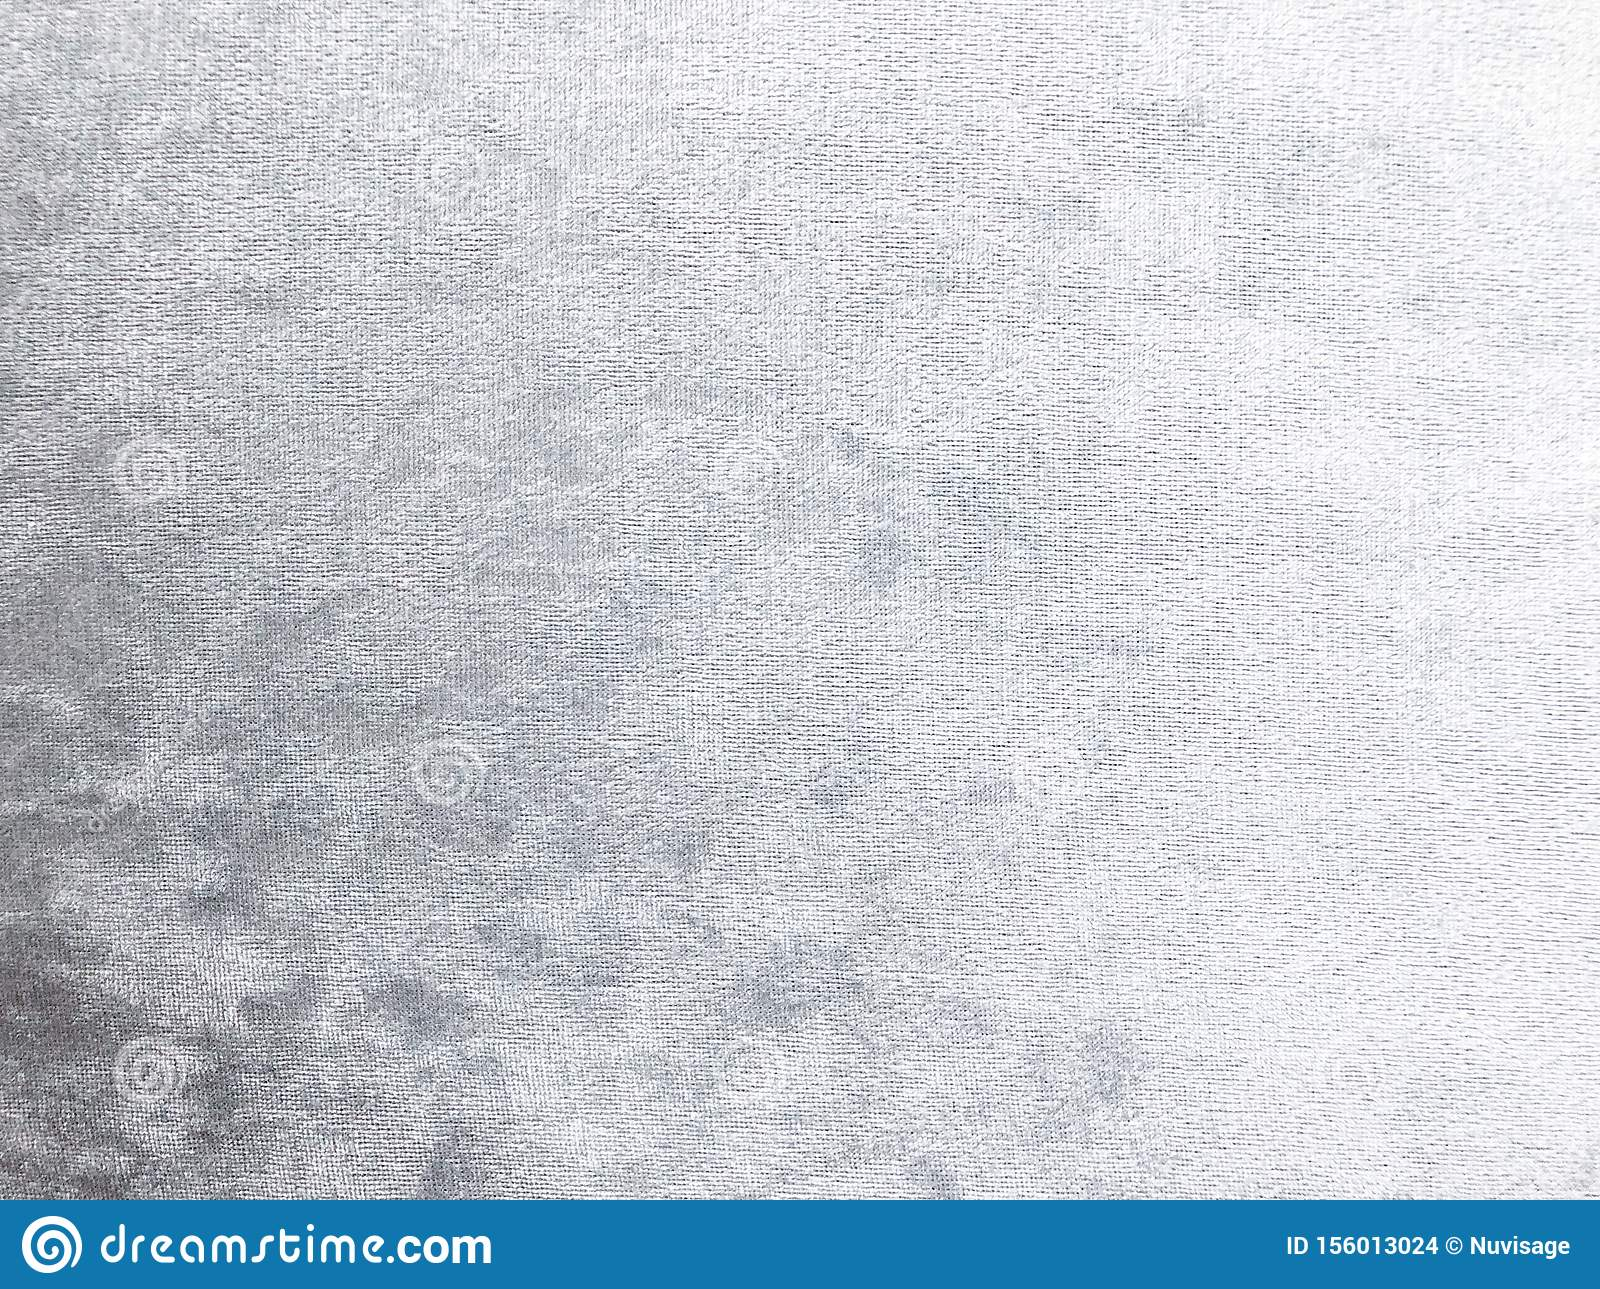 Soft Gray Velvet Fabric Texture Smooth Fabric Background Stock Photo Image Of Garment Board 156013024